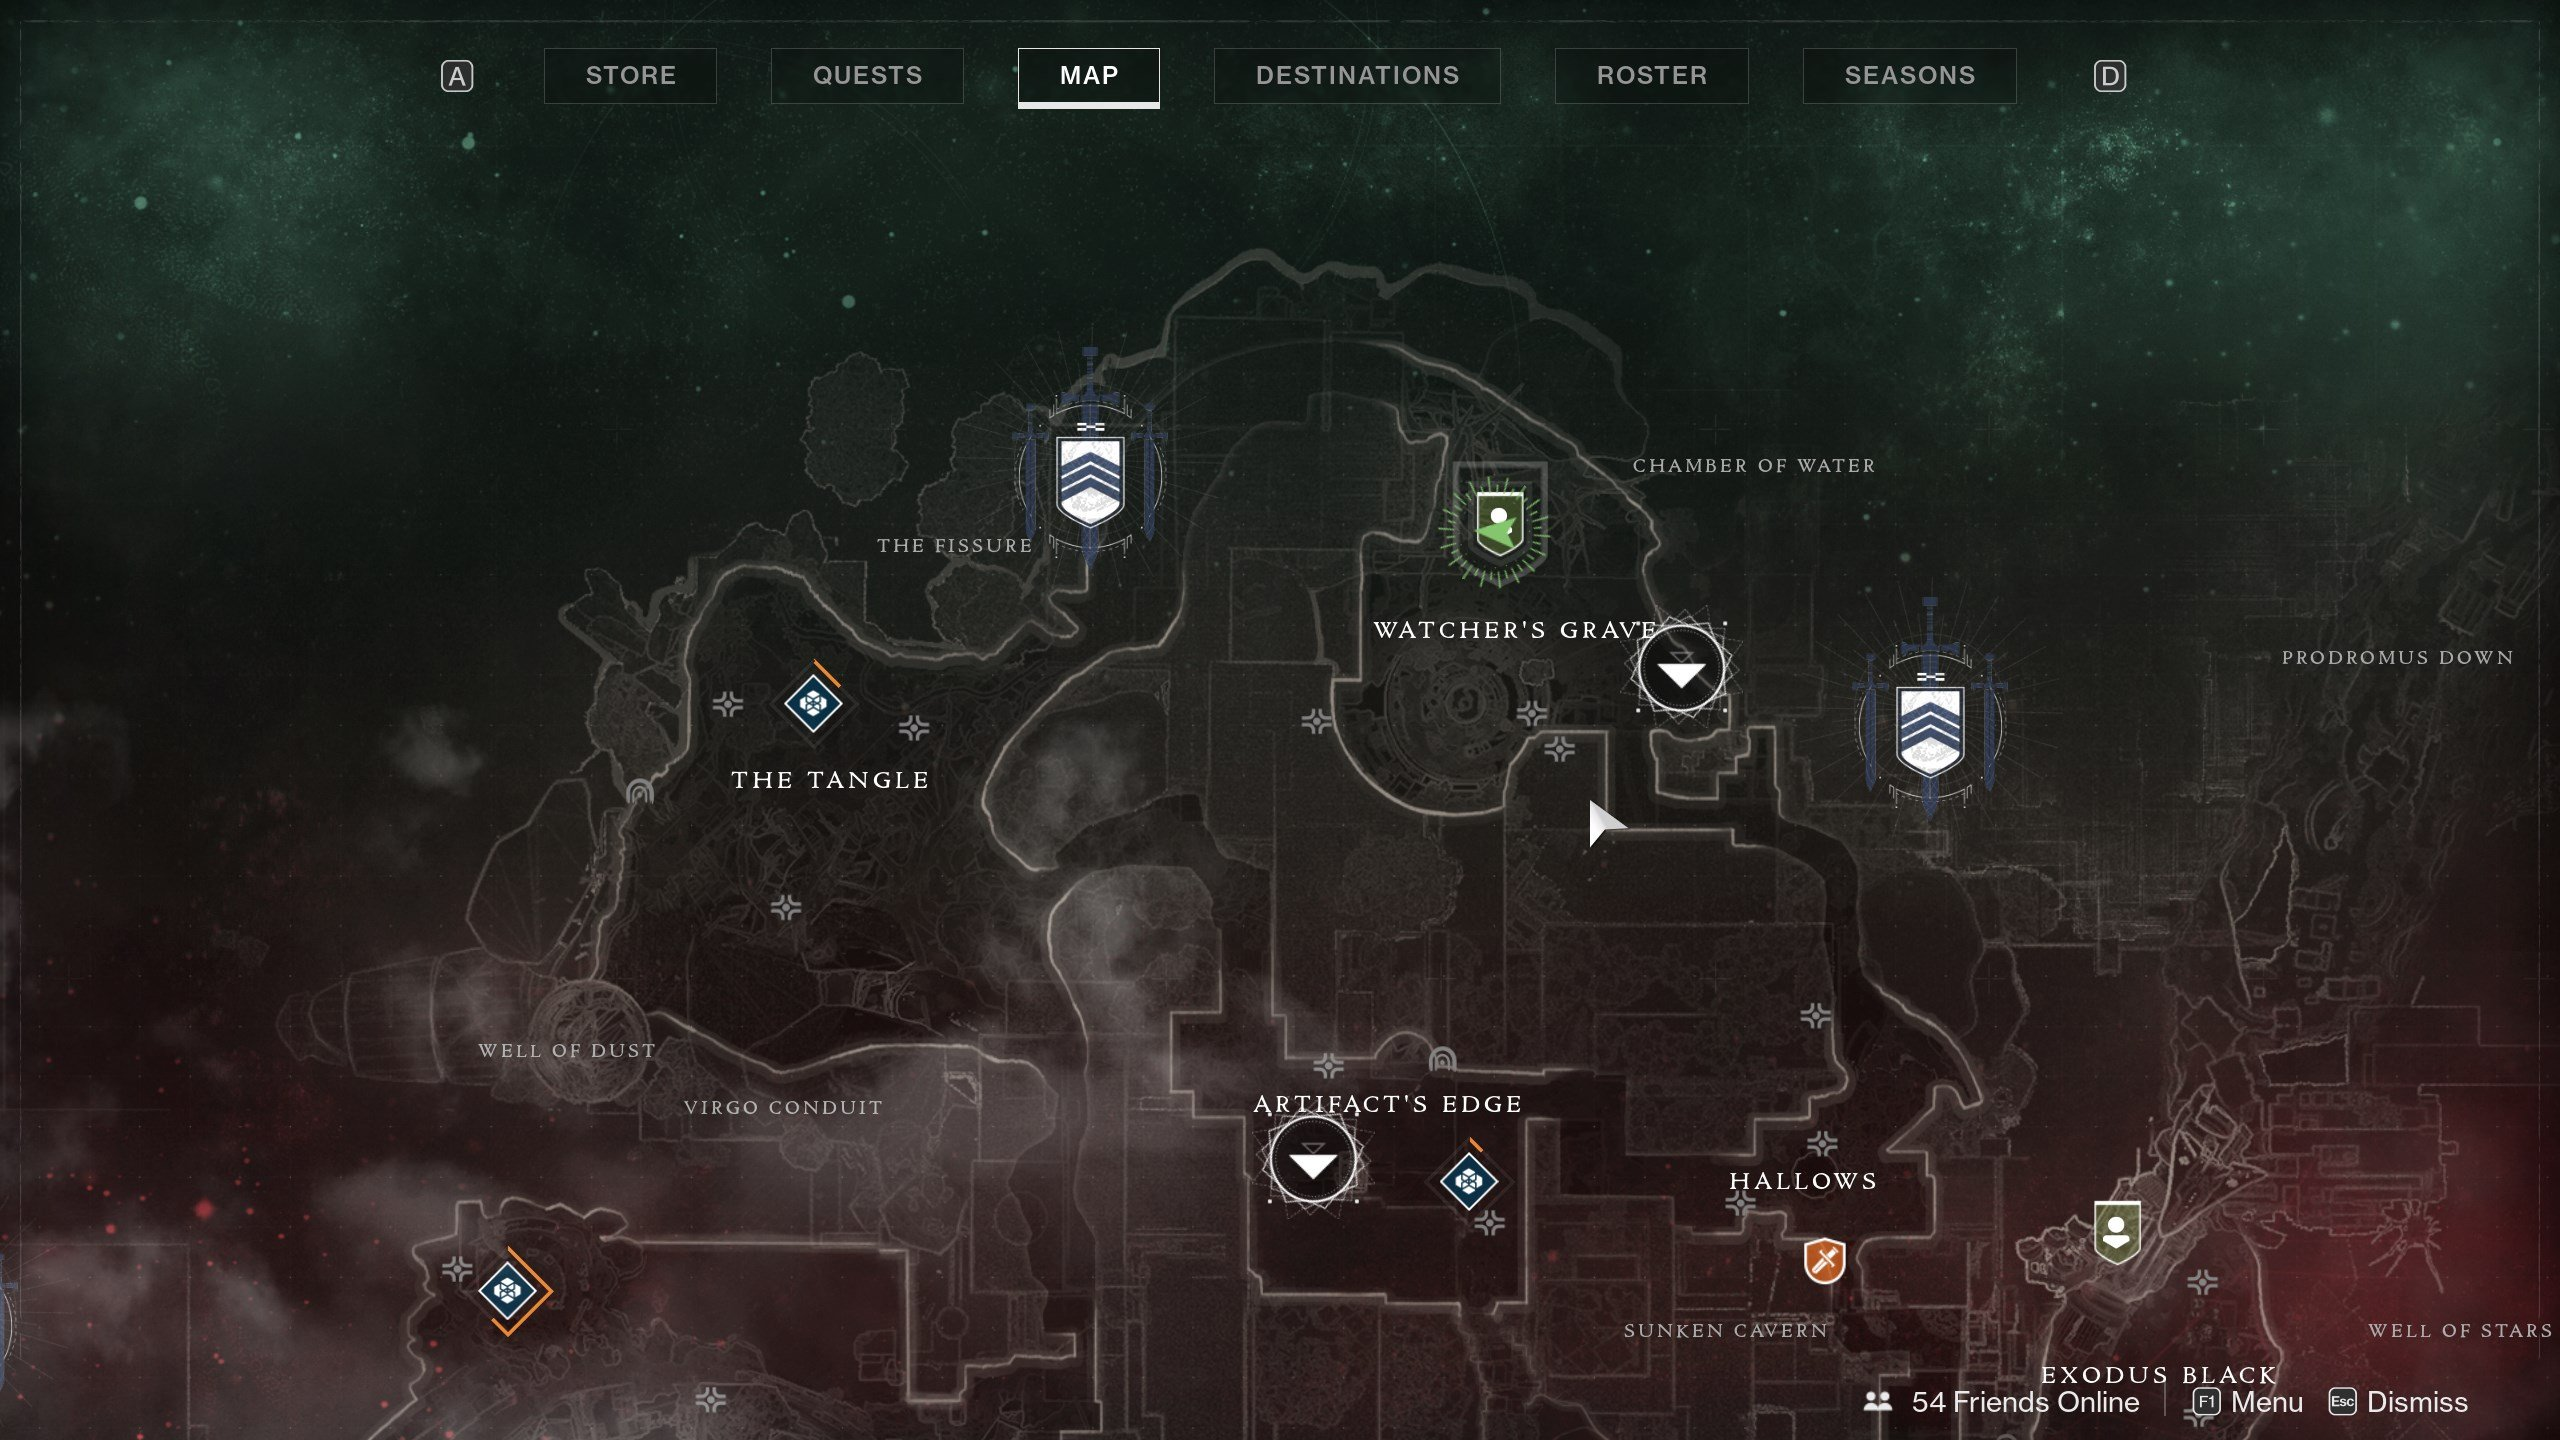 Destiny 2 - Xur Location October 18, 2019